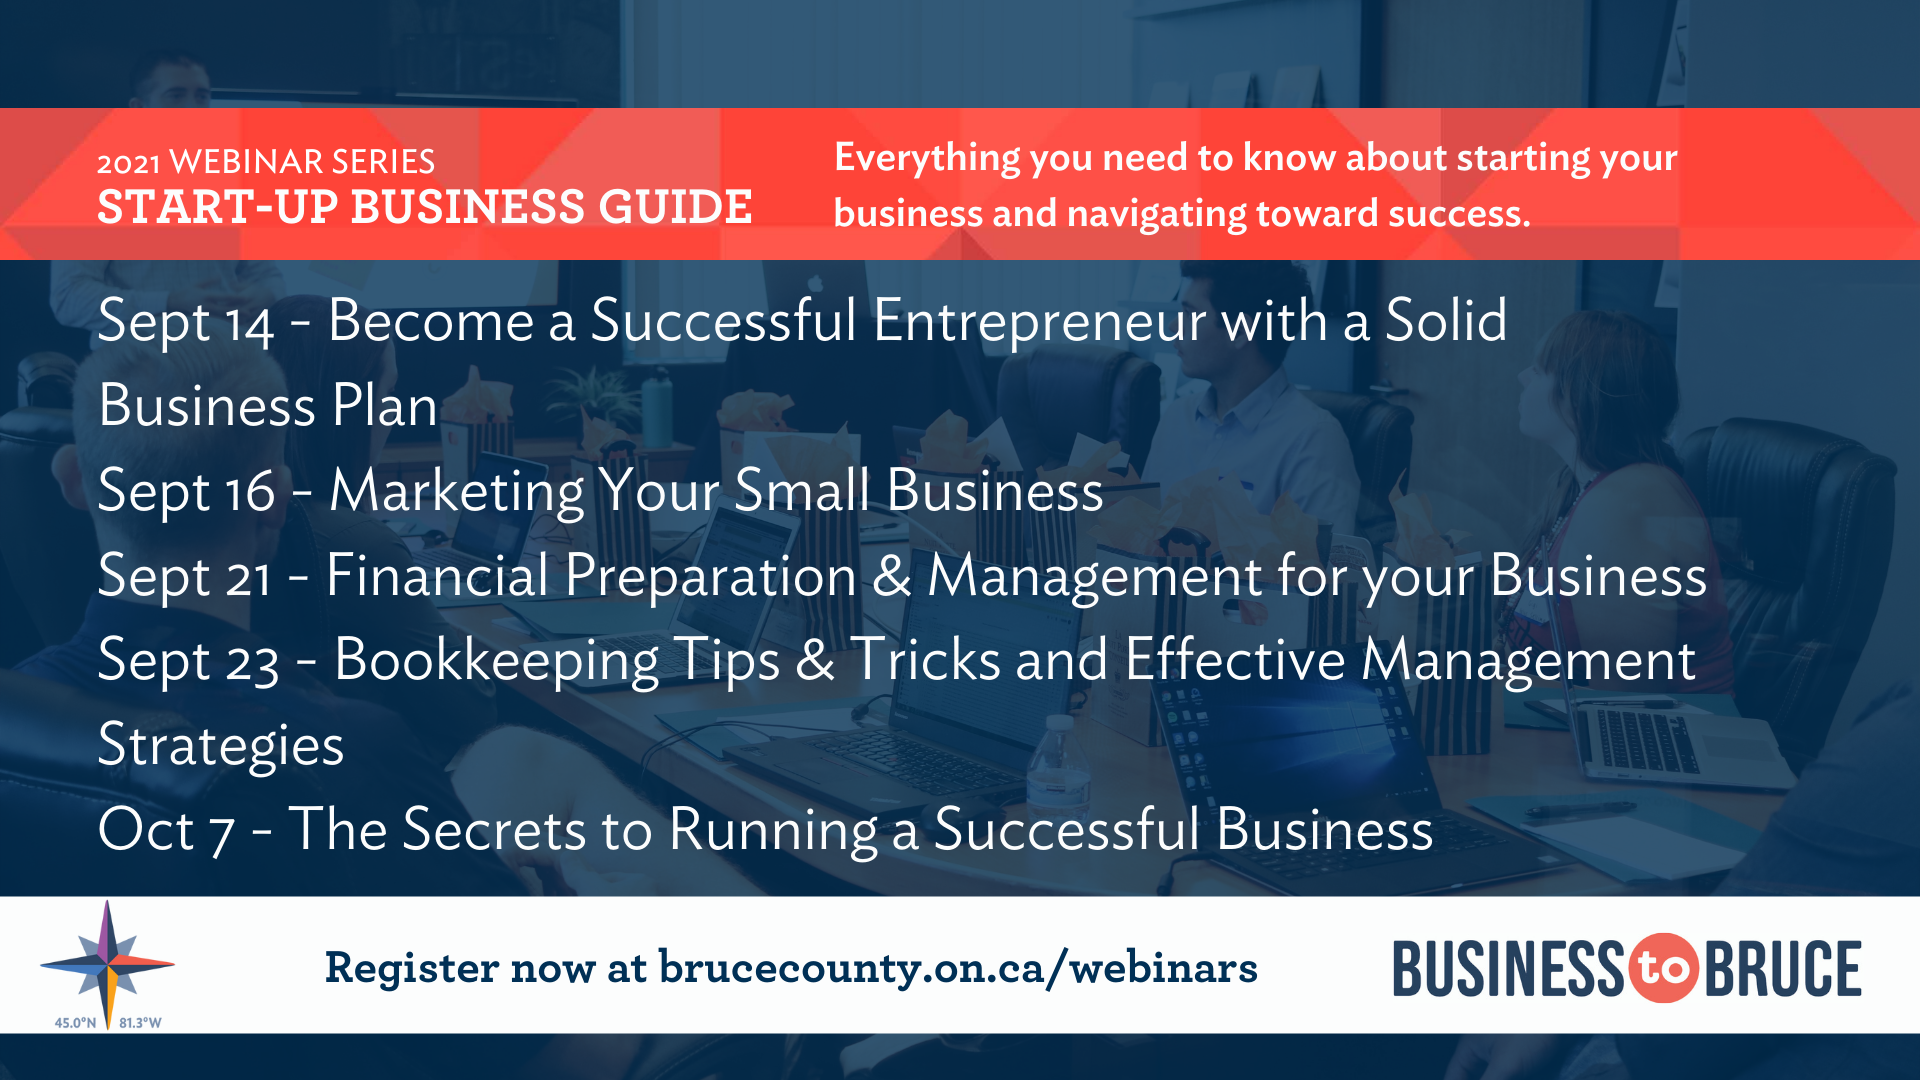 Business to Bruce Poster: The Start-Up Business Guide Series - Everything you need to know about starting your business and navigating toward success.